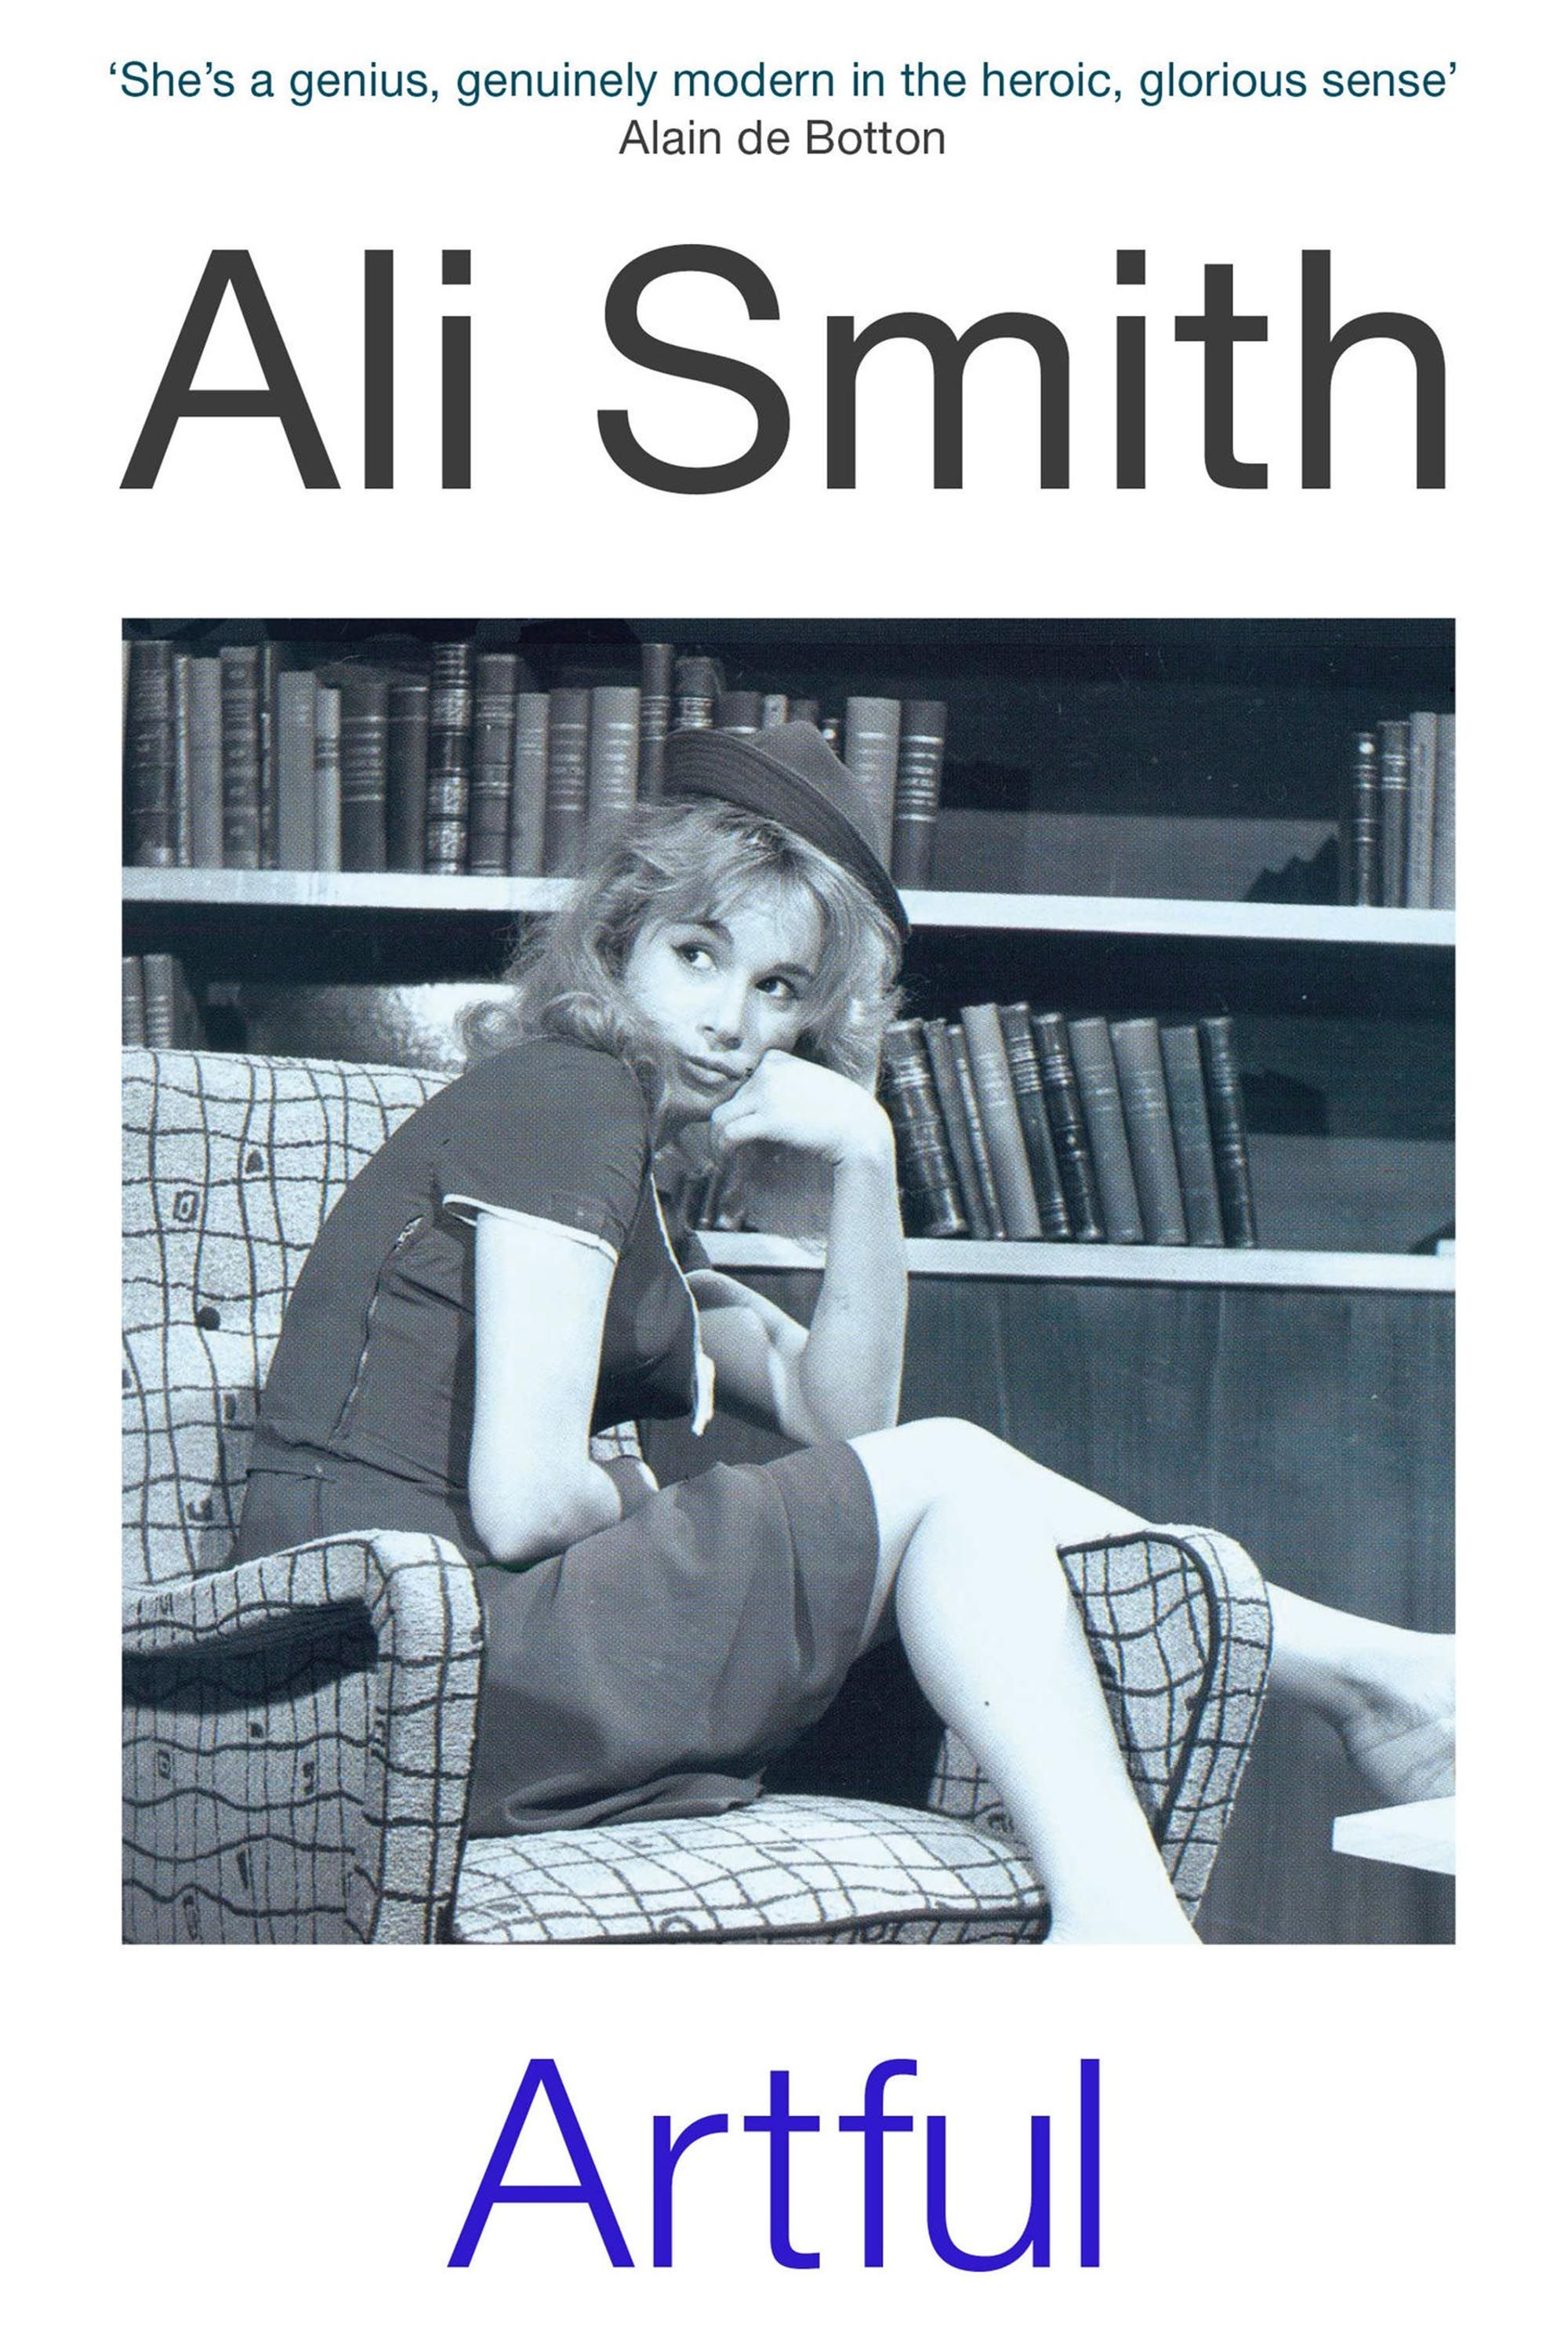 "<p>Mind-expanding, generous and fierce, <em><a href=""https://www.amazon.com/Artful-Ali-Smith-ebook/dp/B008EKMA2Y"">Artful</a></em> for me spoke towards the ardency and urgency of all-pronoun love and loss, and art-making and healing in all its dialogic form and formlessness. —<strong>Amanda Lee-Koe, author of <em><a href=""http://shop.epigrambooks.sg/products/ministry-of-moral-panic"">Ministry of Moral Panic</a></em><span class=""redactor-invisible-space""><a href=""http://shop.epigrambooks.sg/products/ministry-of-moral-panic""></a></span></strong><strong></strong></p>"